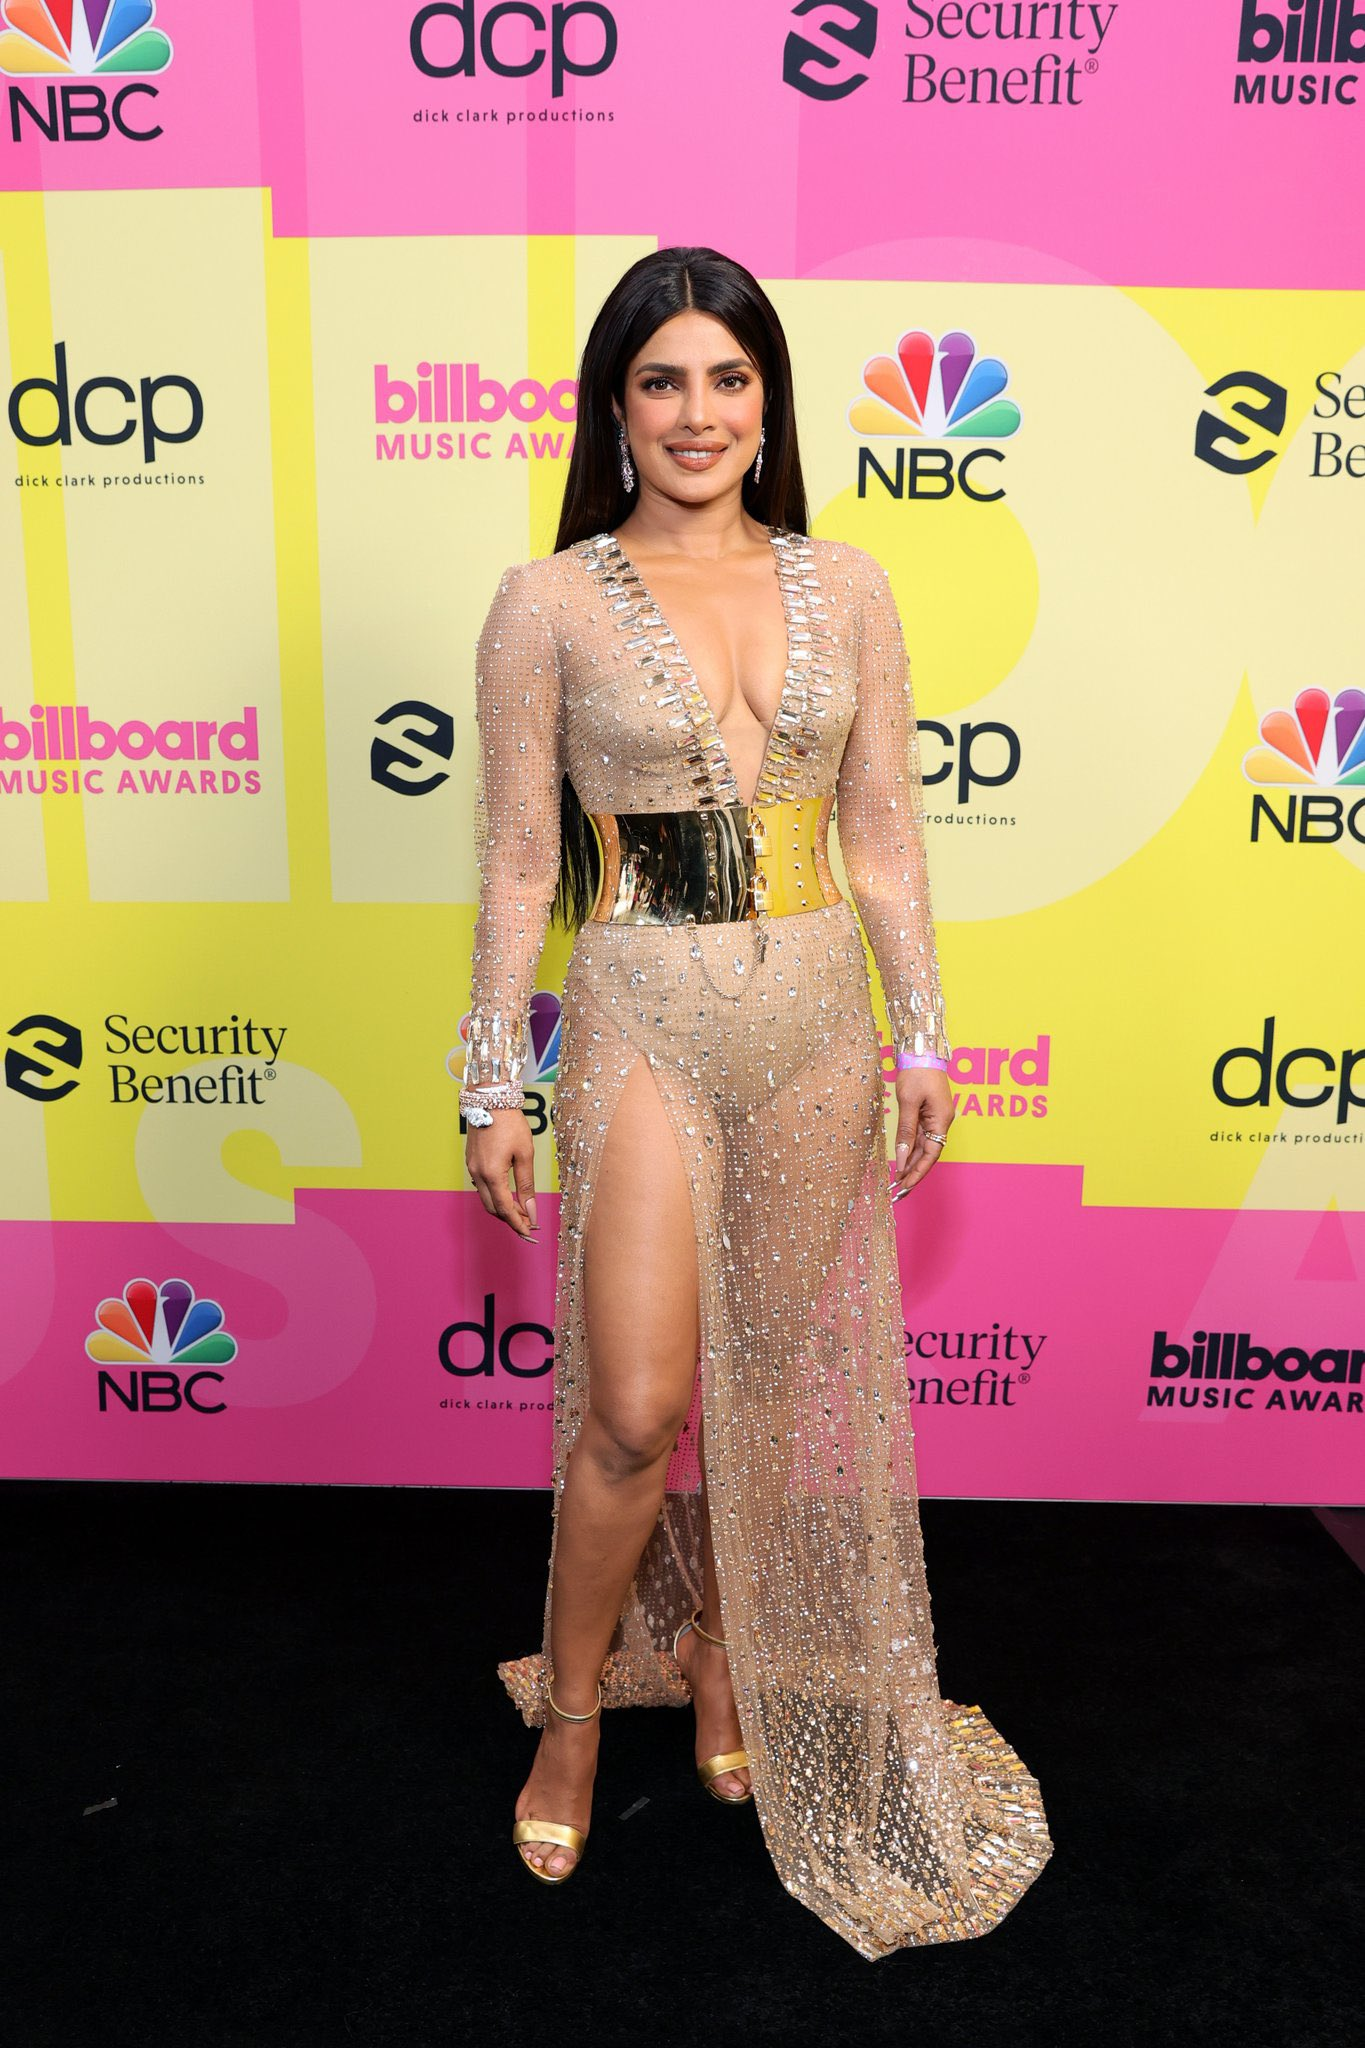 Priyanka Chopra in a sheer crystal-embellished from dolce and gabbana  with a plunging neckline and thigh-high slit for the BBMAs.